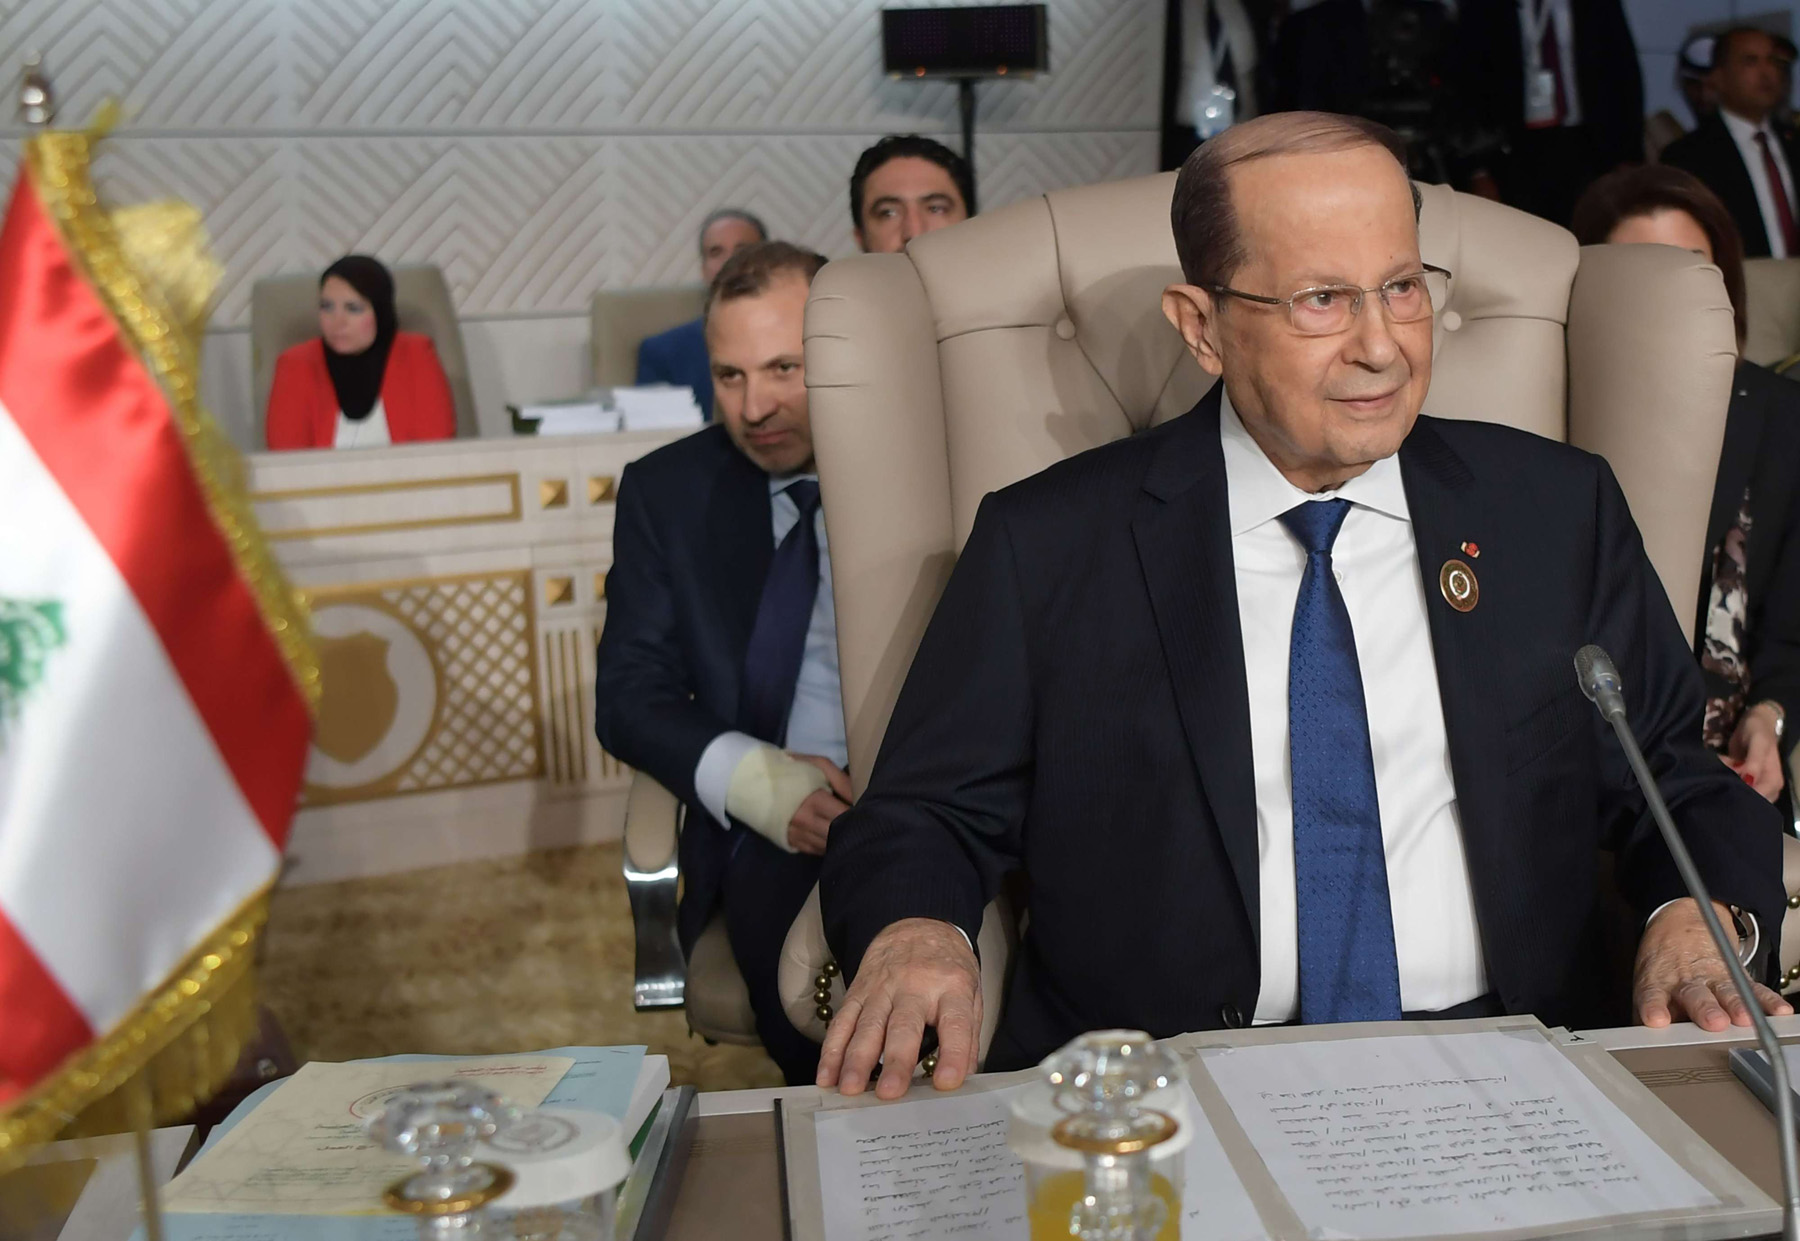 Lebanese President Michel Aoun (R) and his Foreign Minister Gibran Bassil (C) attend the opening session of the 30th Arab League summit in the Tunisian capital, Tunis, on March 31, 2019.  AFP